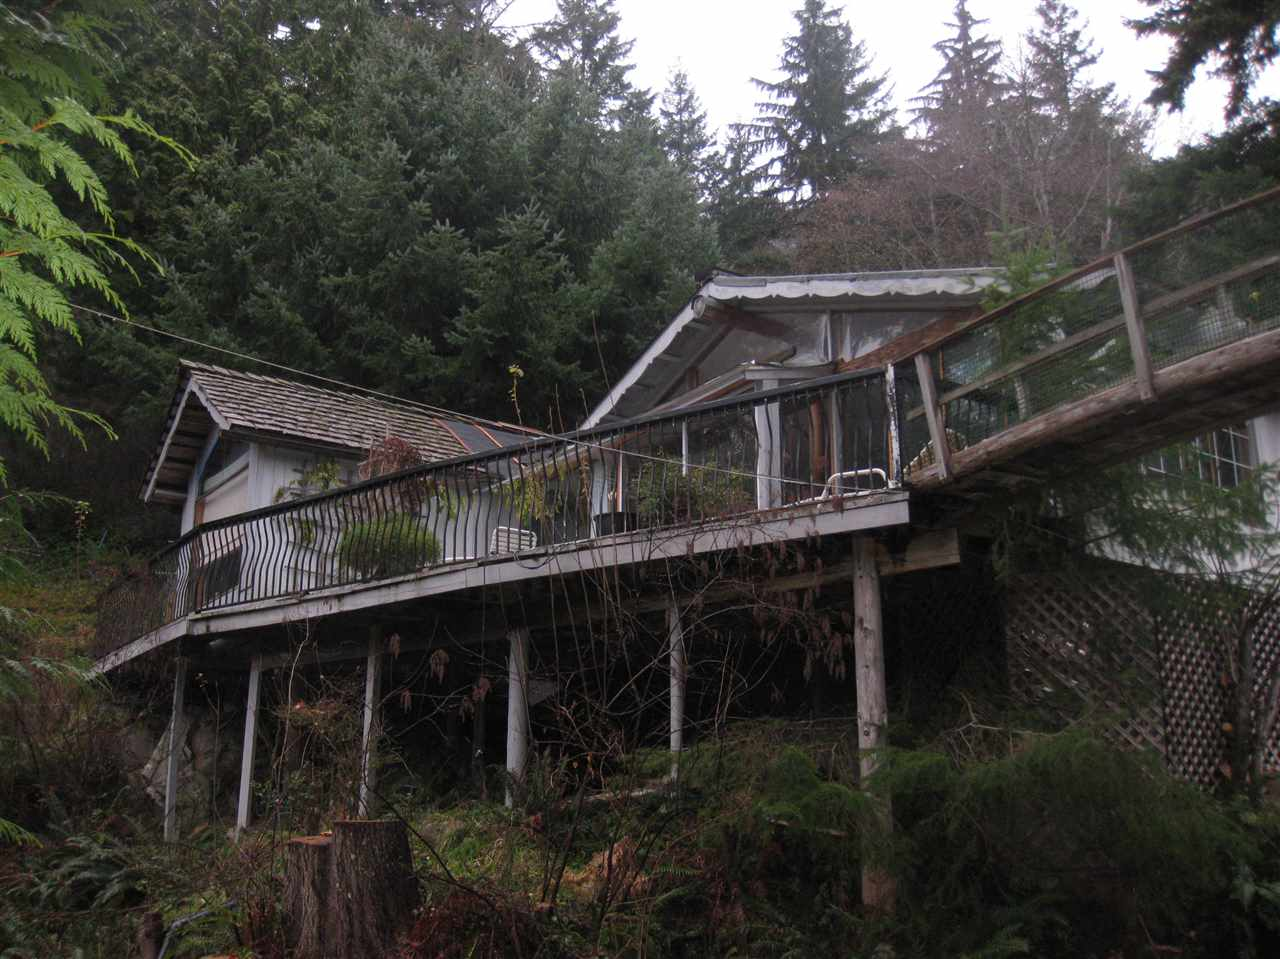 Photo 9: 720 GARDNER Street: Bowen Island House for sale : MLS® # R2074033